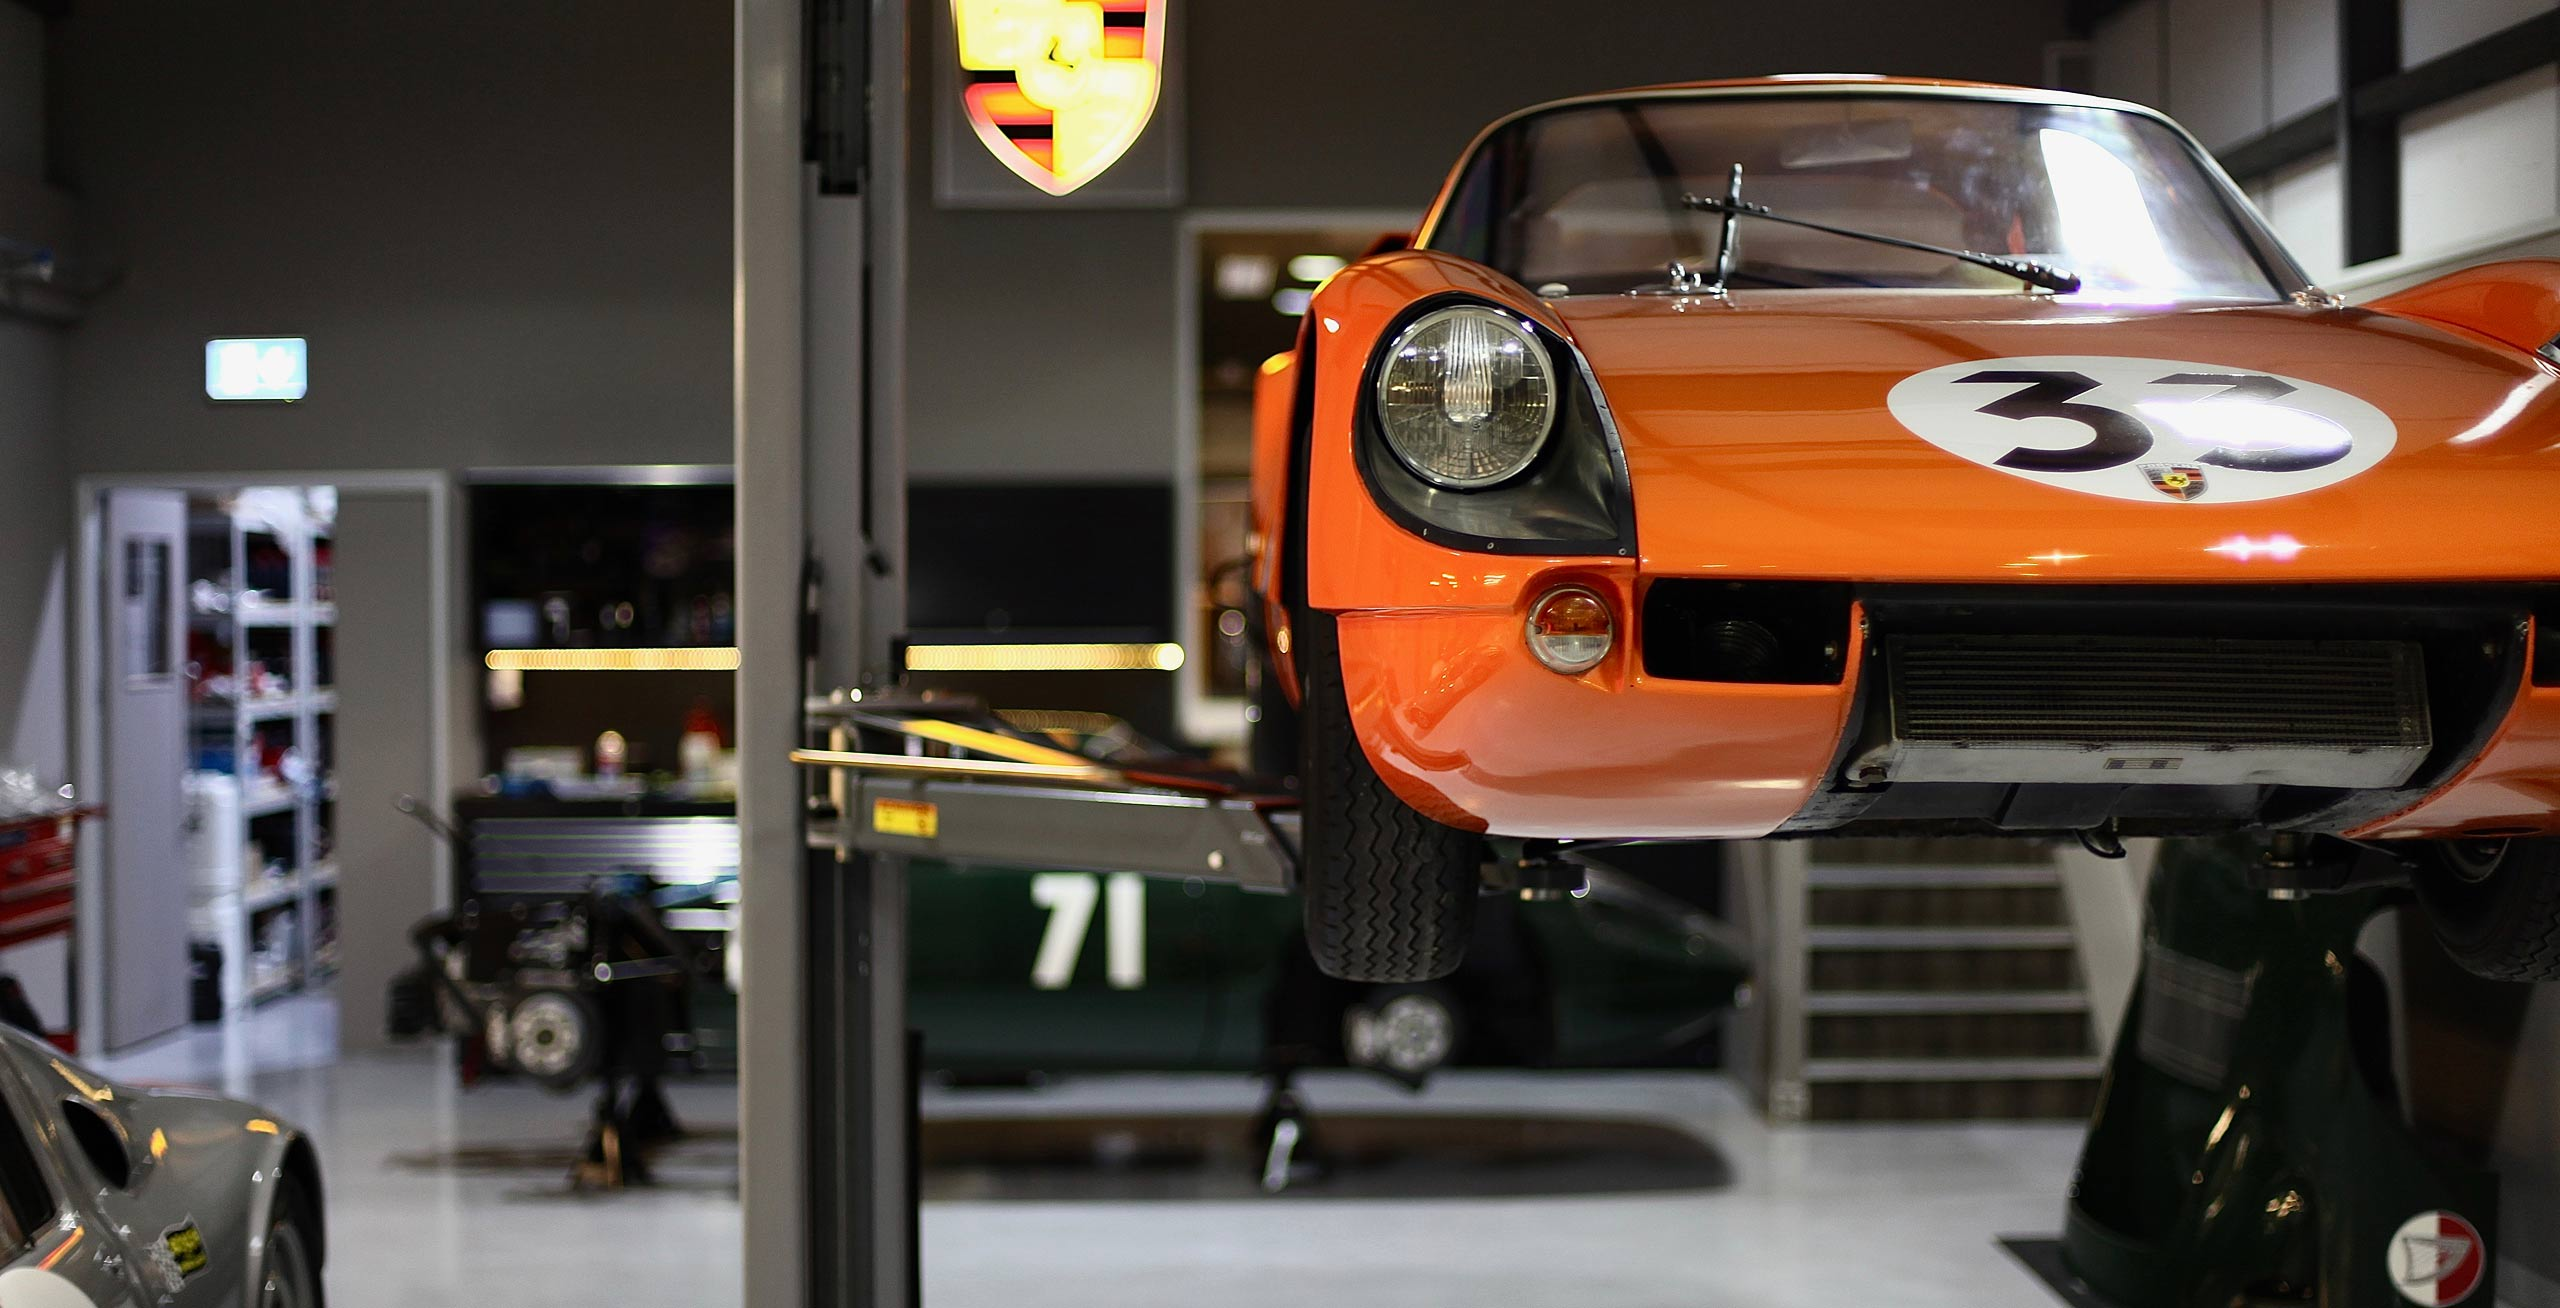 Maxed-Page Historic Porsche Specialists UK preservation